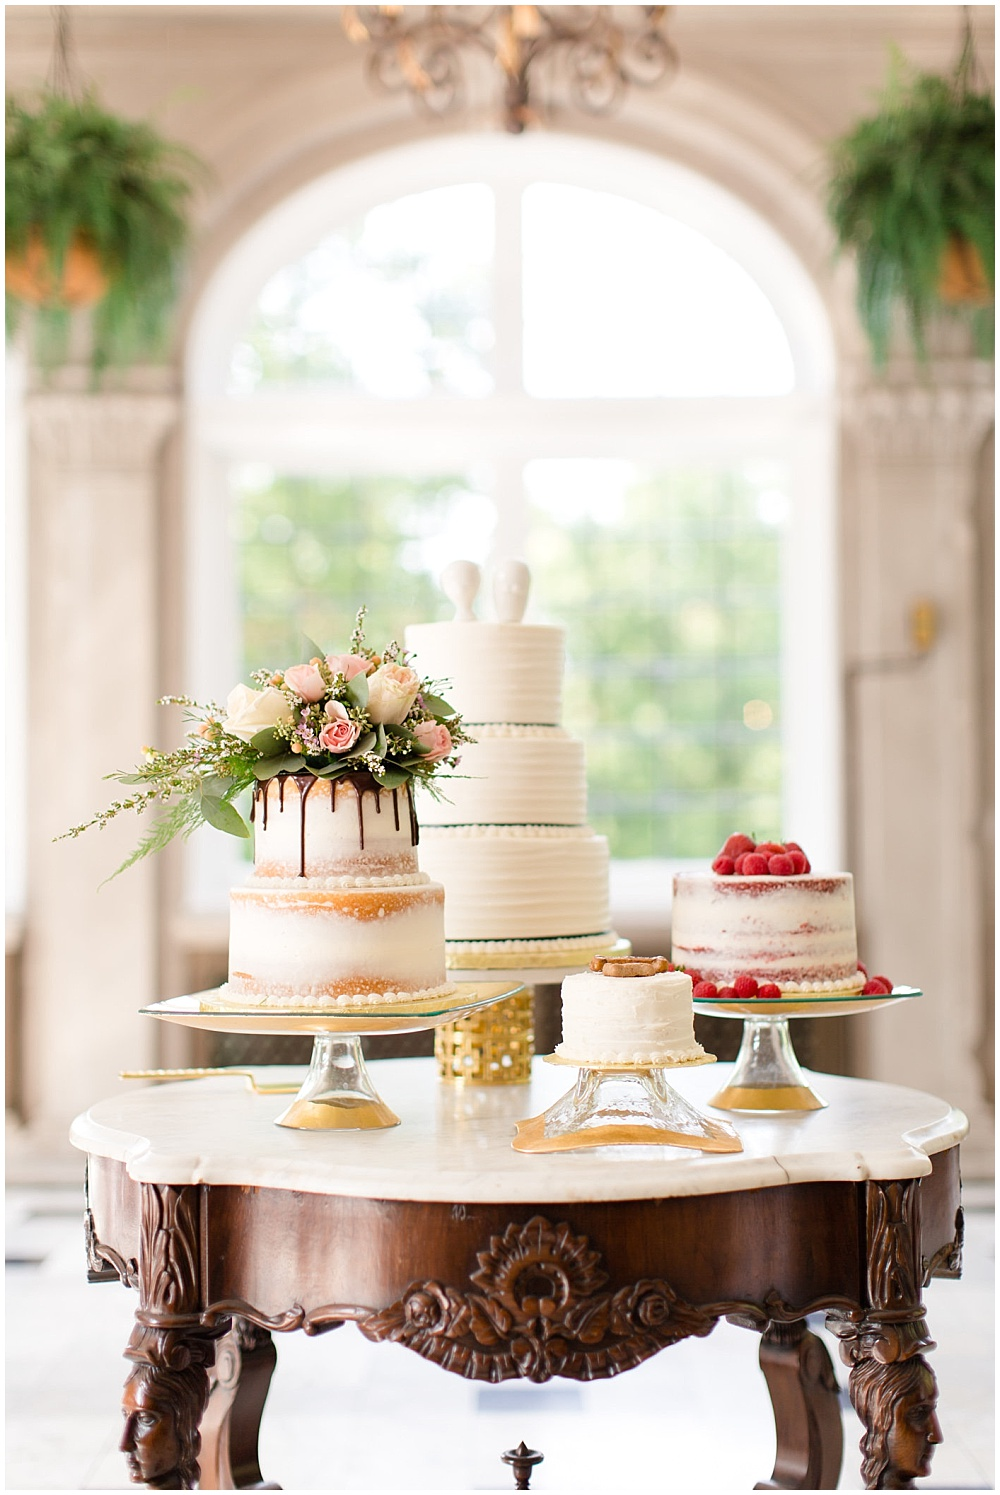 multiple wedding cakes; gold cakes stands; jonathon adler cake stand; naked cakes; puppy cake | Outdoor Terrace Wedding, Laurel Hall - Danielle Harris Photography; Jessica Dum Wedding Coordination